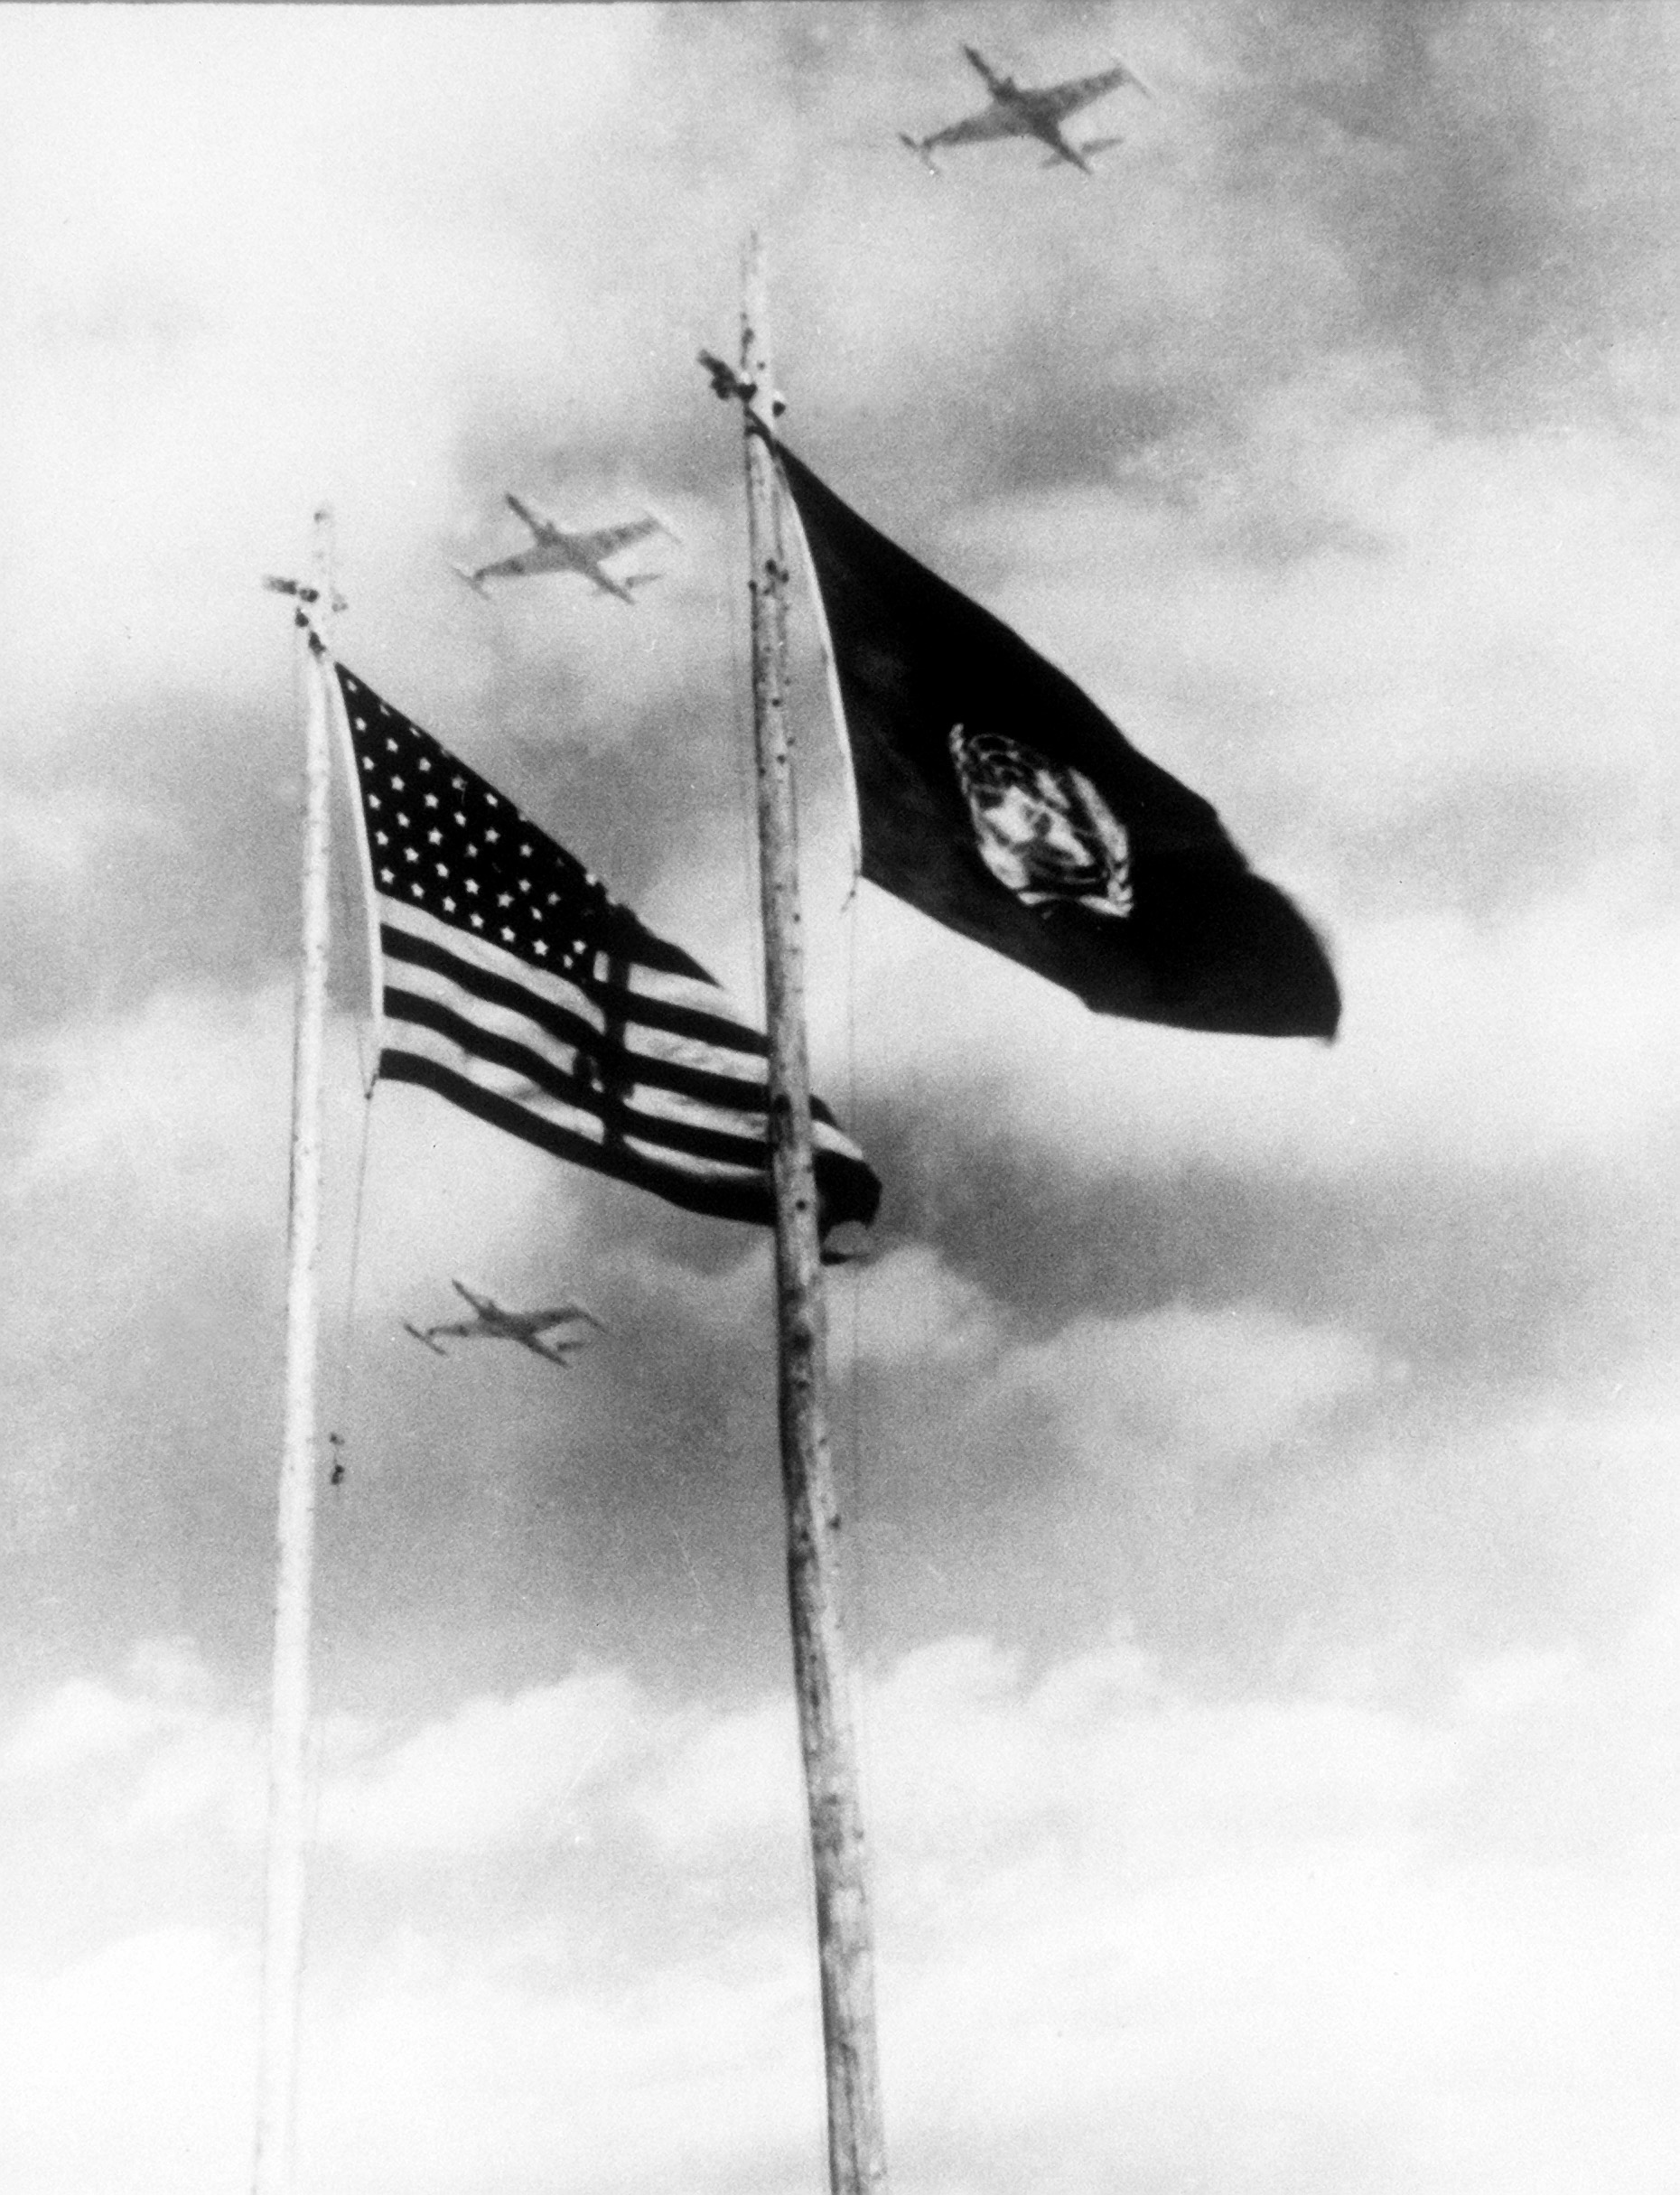 United States and UN flags waving.